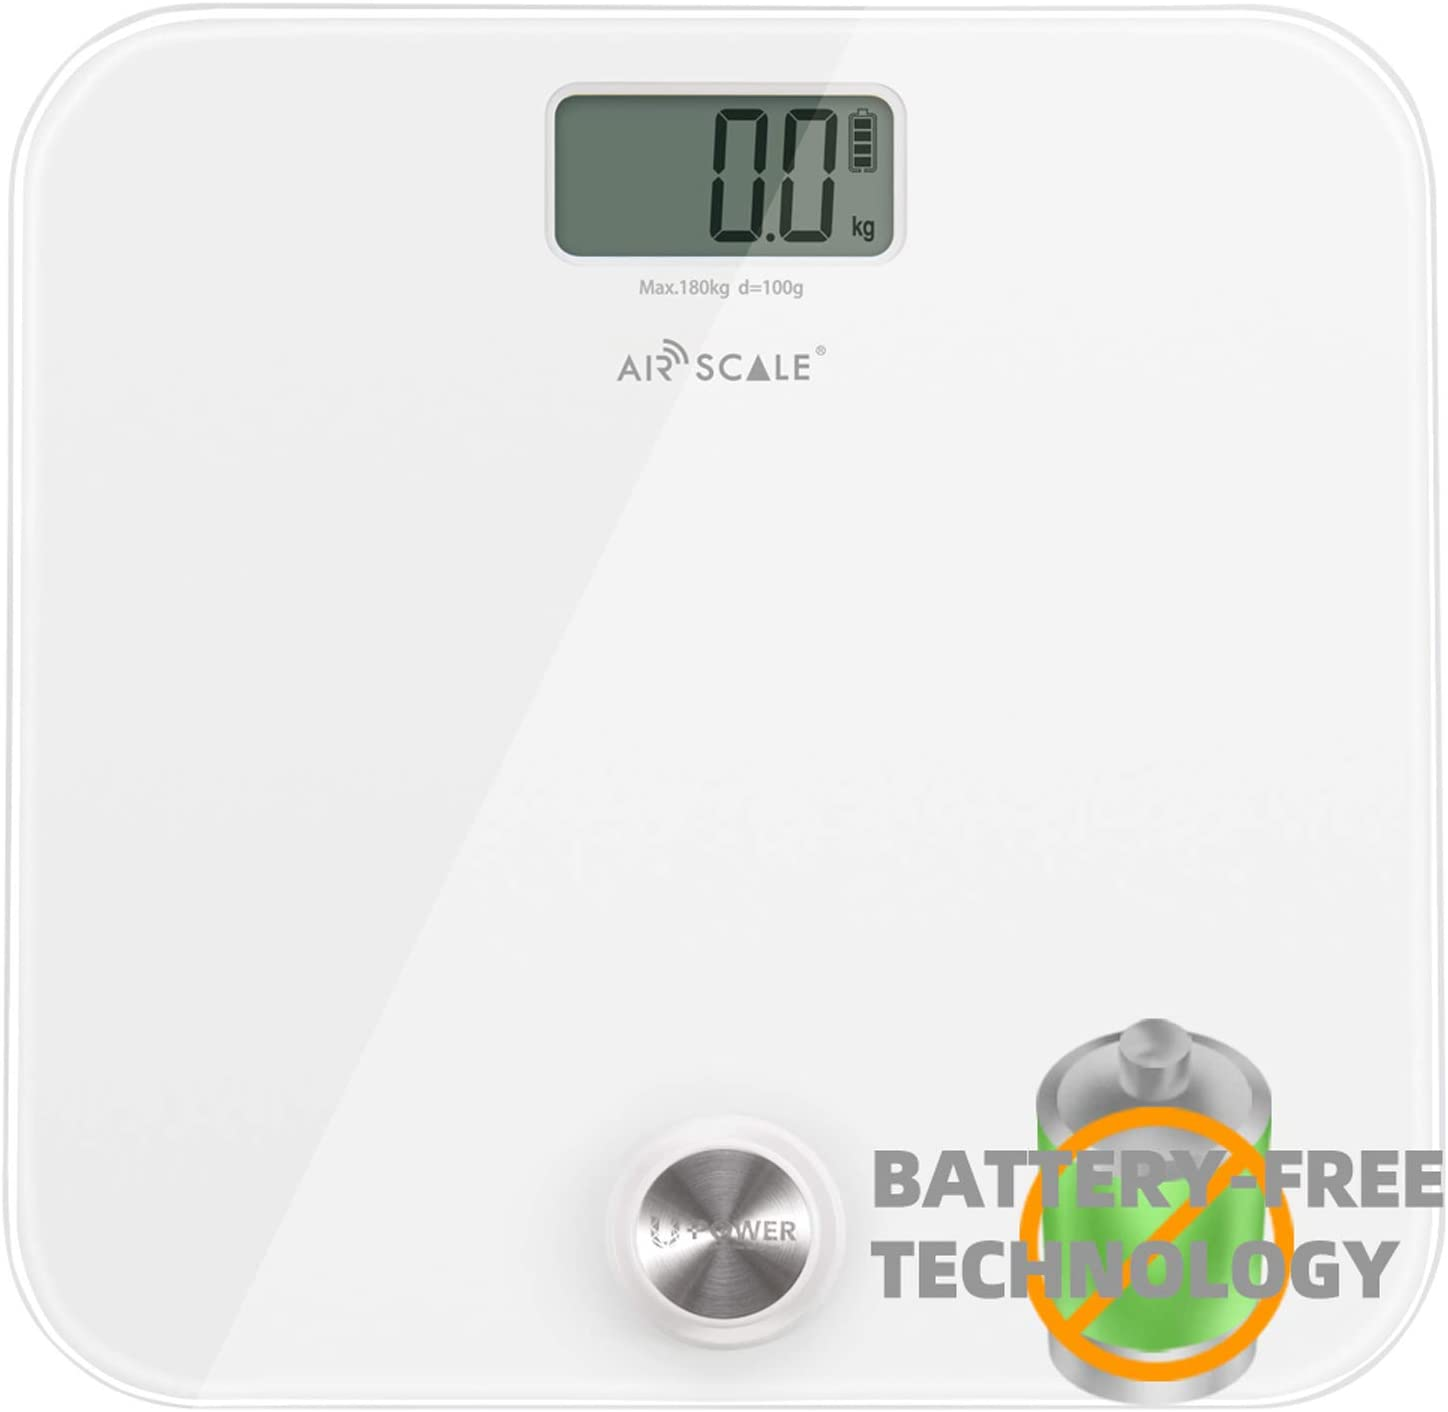 AIRSCALE Digital Bathroom Weight Scale for People,Battery-FreeUpdated U-Power Technology Highly Accurate BodyWeighing Scale Self-Generated Power,Large LCDDisplay,WidePlatform 400lbs White